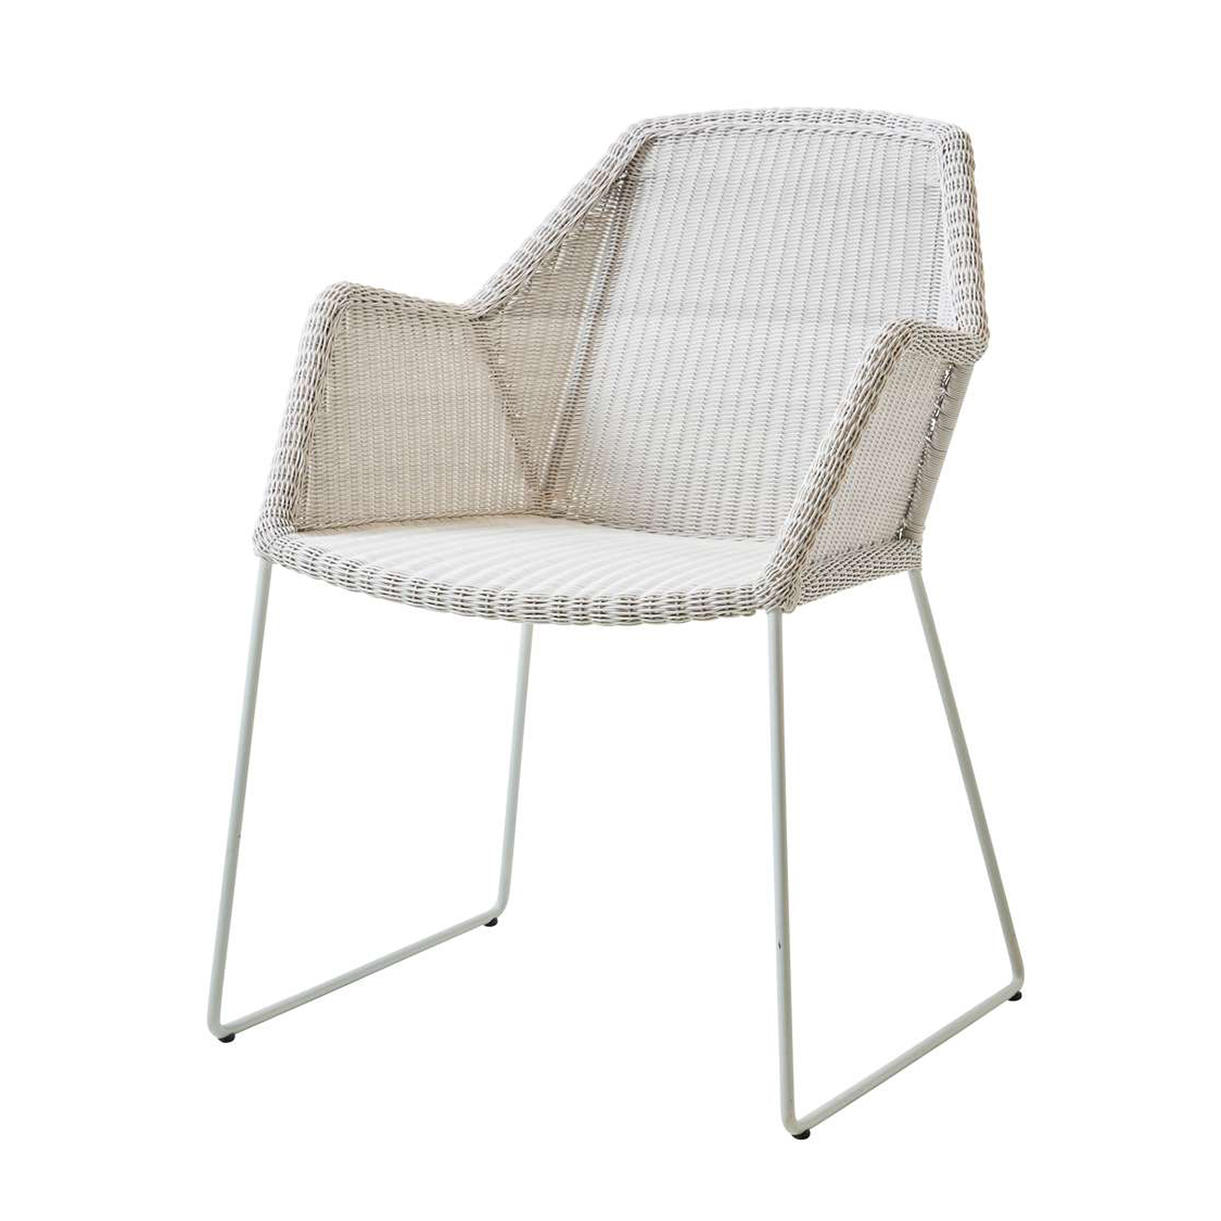 Peachy Breeze Dining Armchair White Grey Unemploymentrelief Wooden Chair Designs For Living Room Unemploymentrelieforg